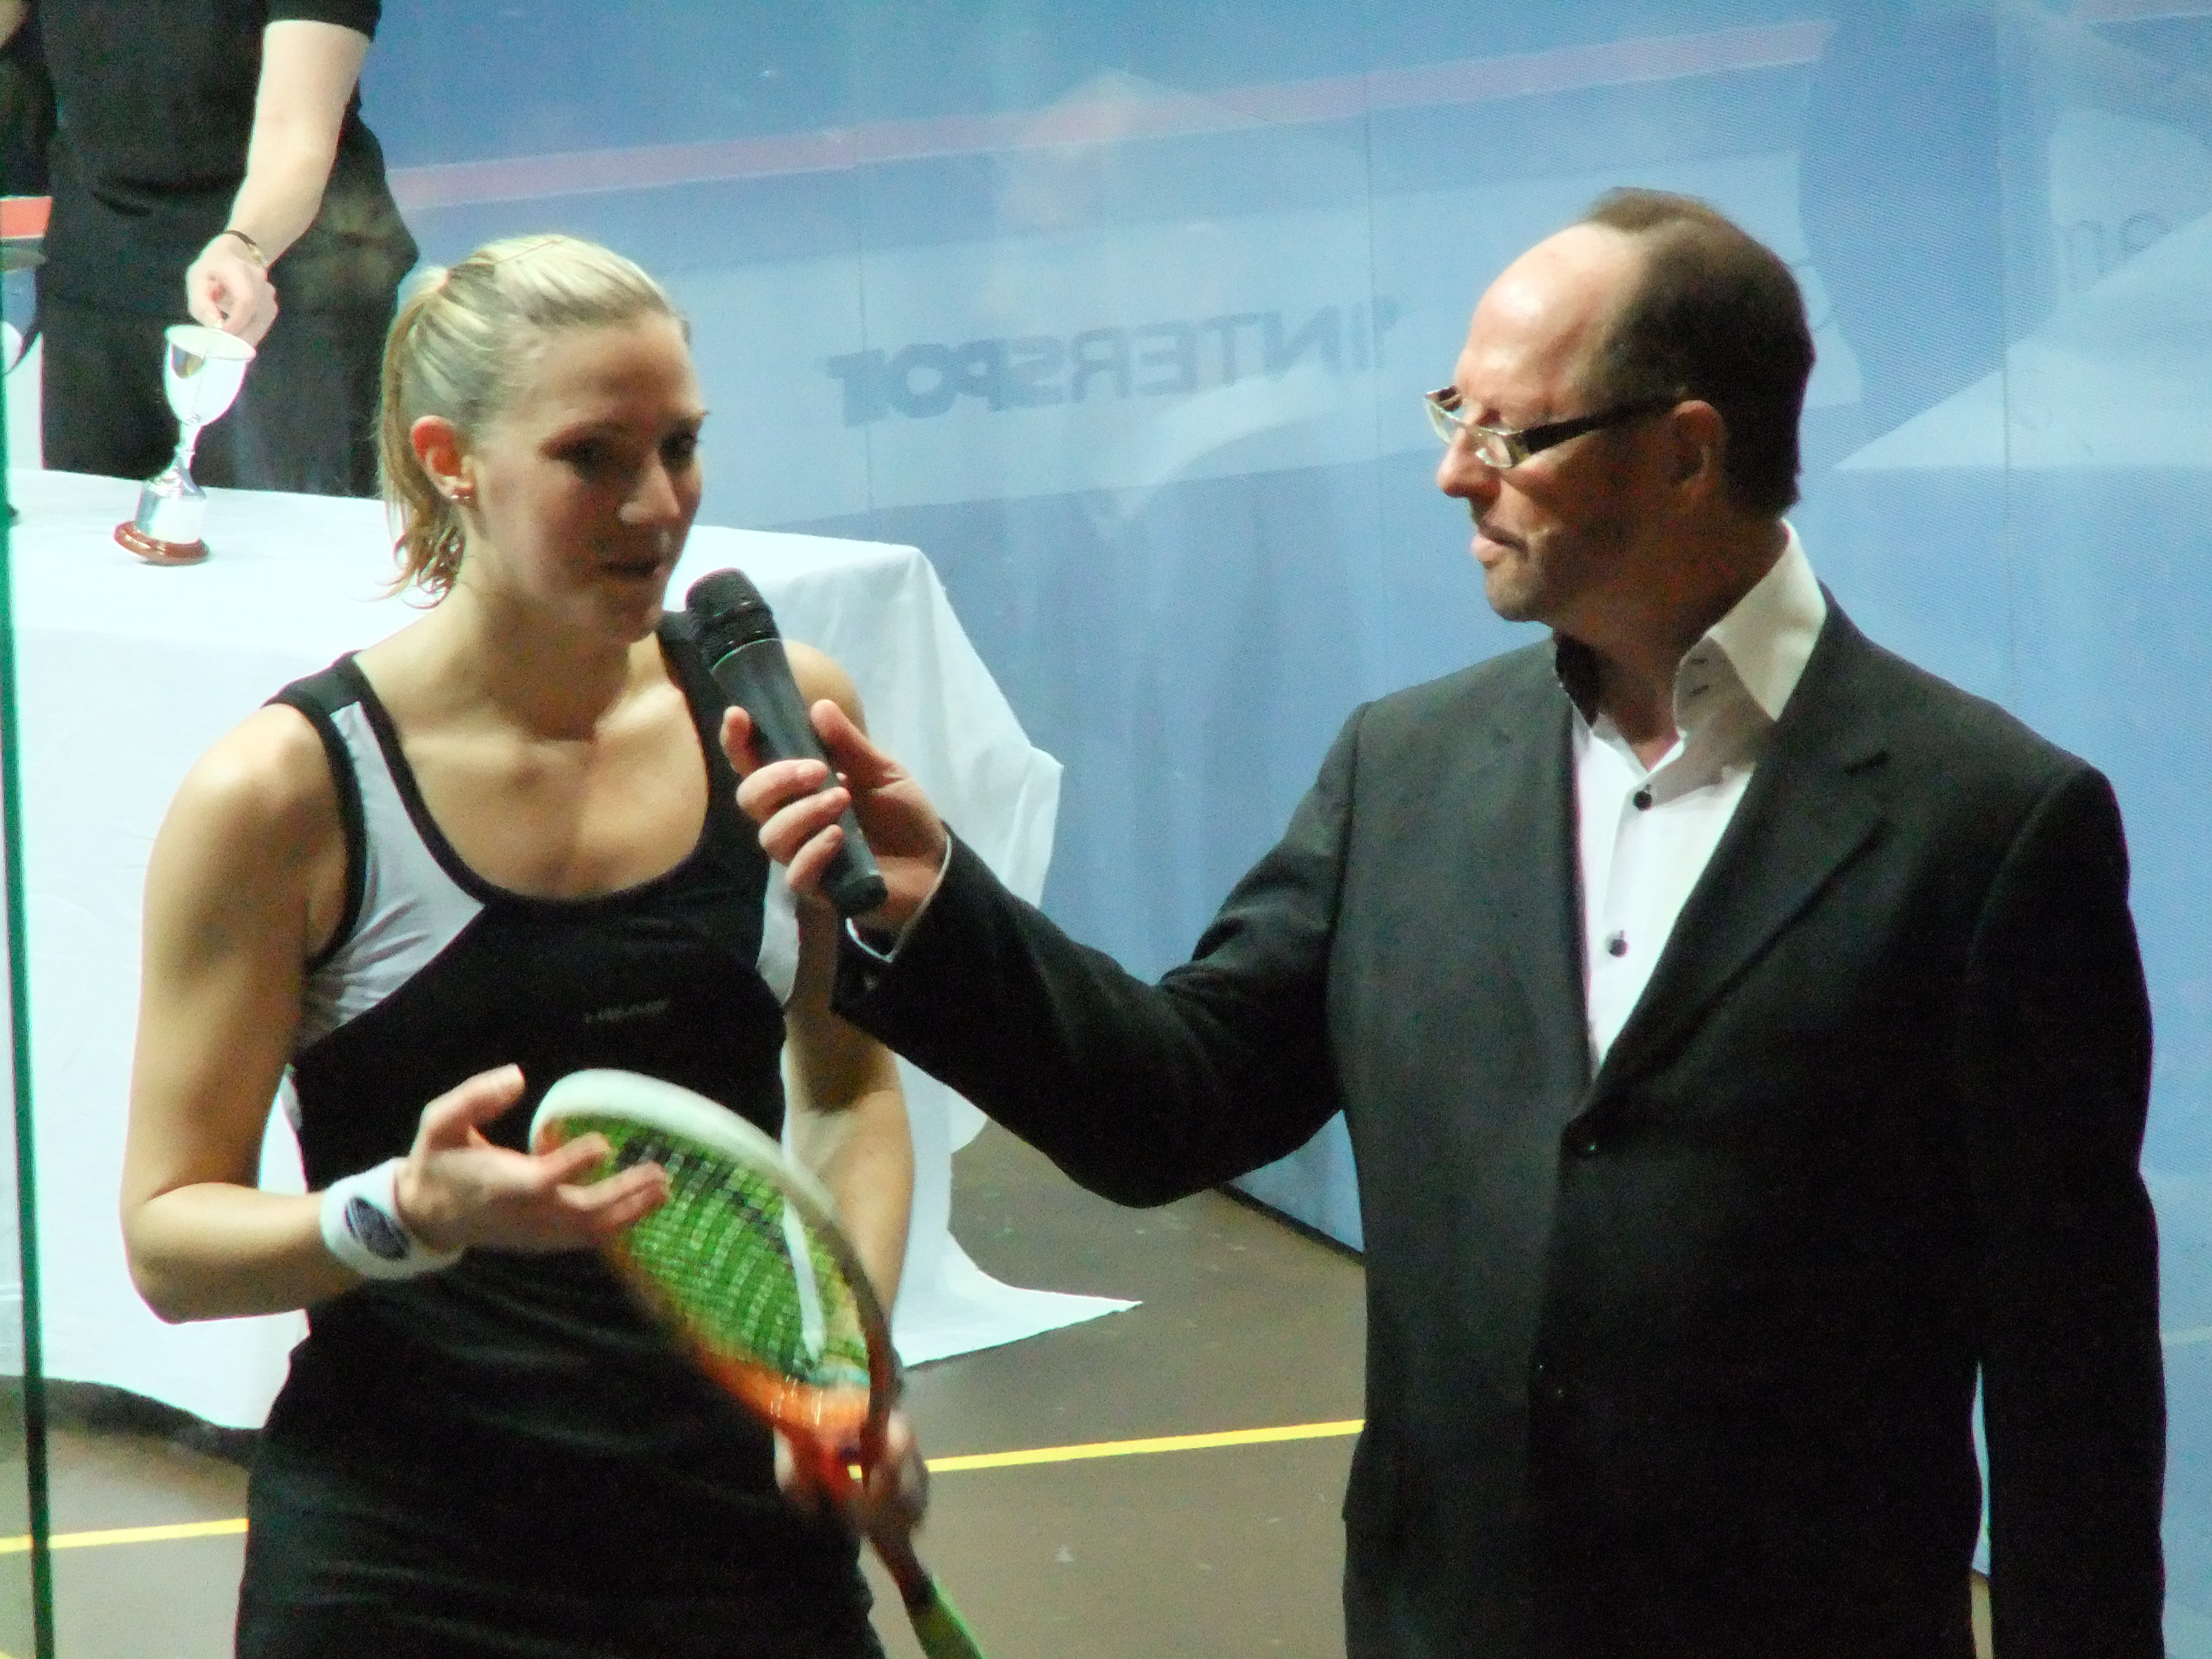 Laura Massaros post match interview Squash in a Rainy City